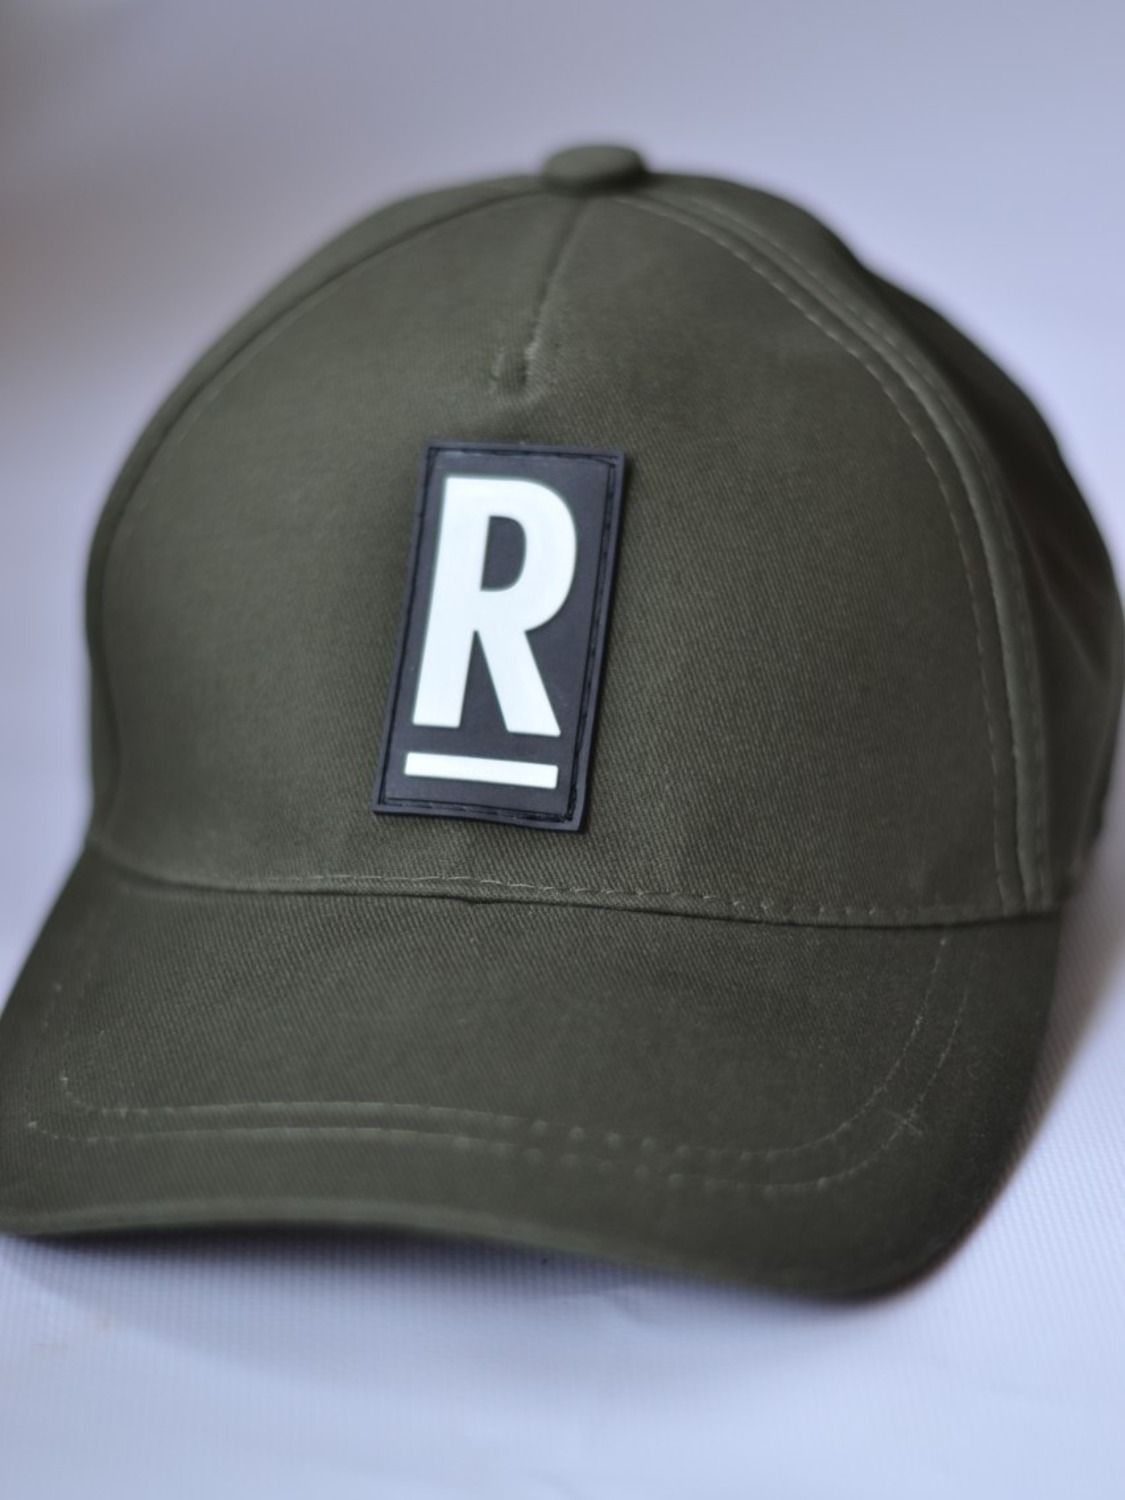 Men's Khaki baseball cap